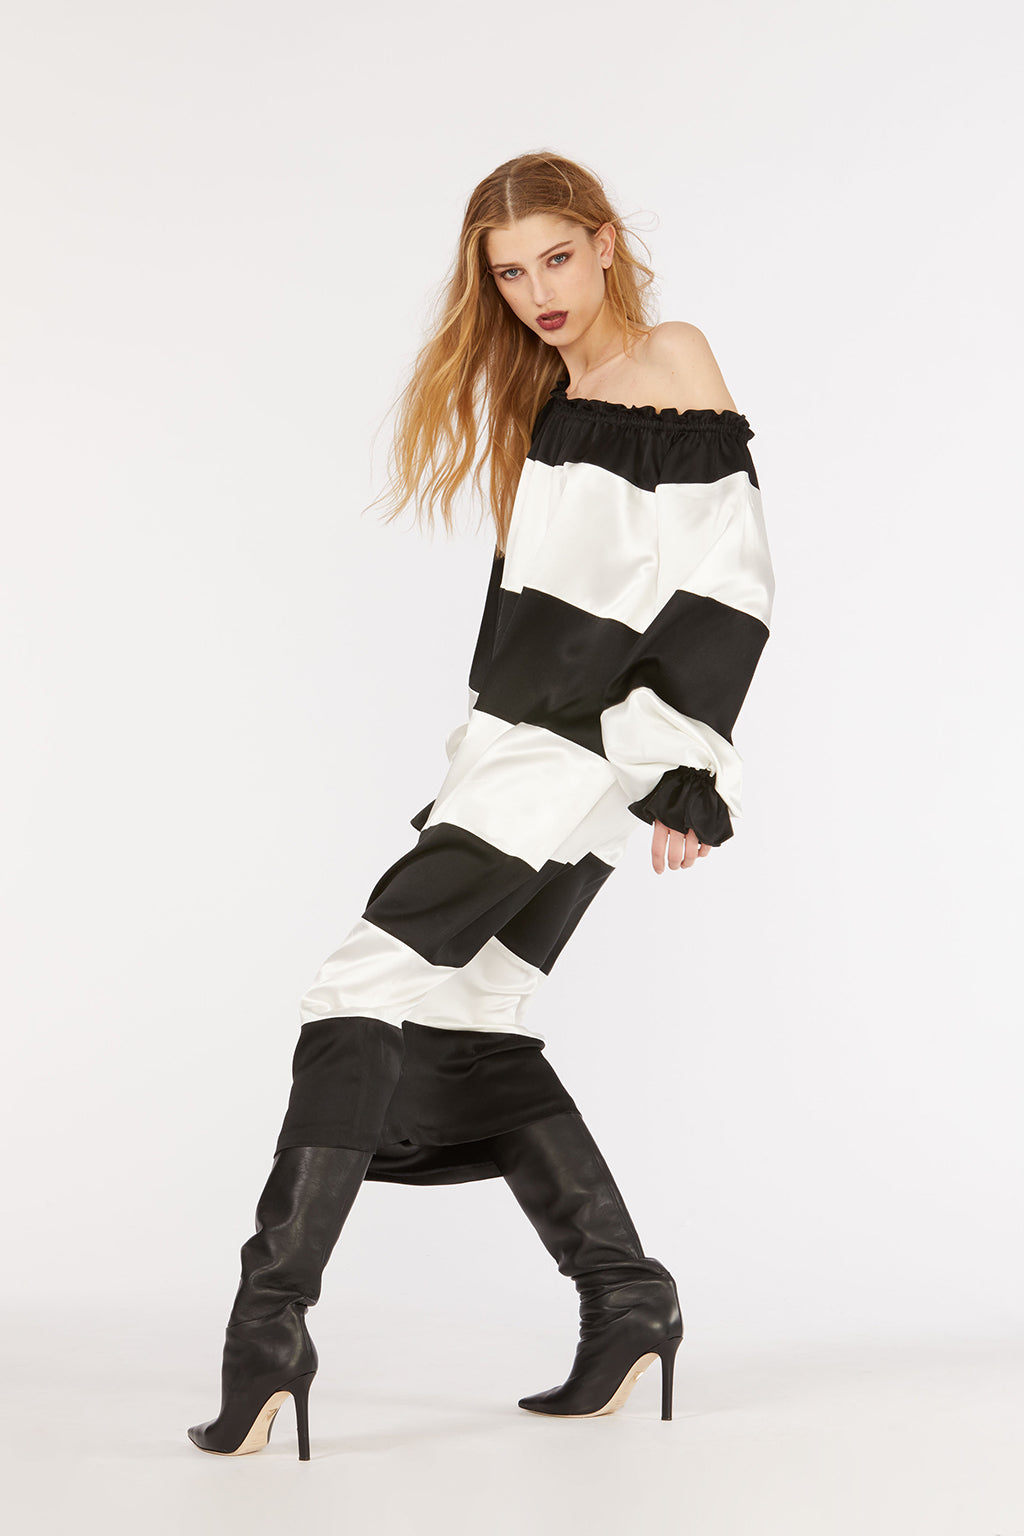 Cynthia Rowley Fall 2018 look 9 featuring a black and white stripe off-shoulder dress.